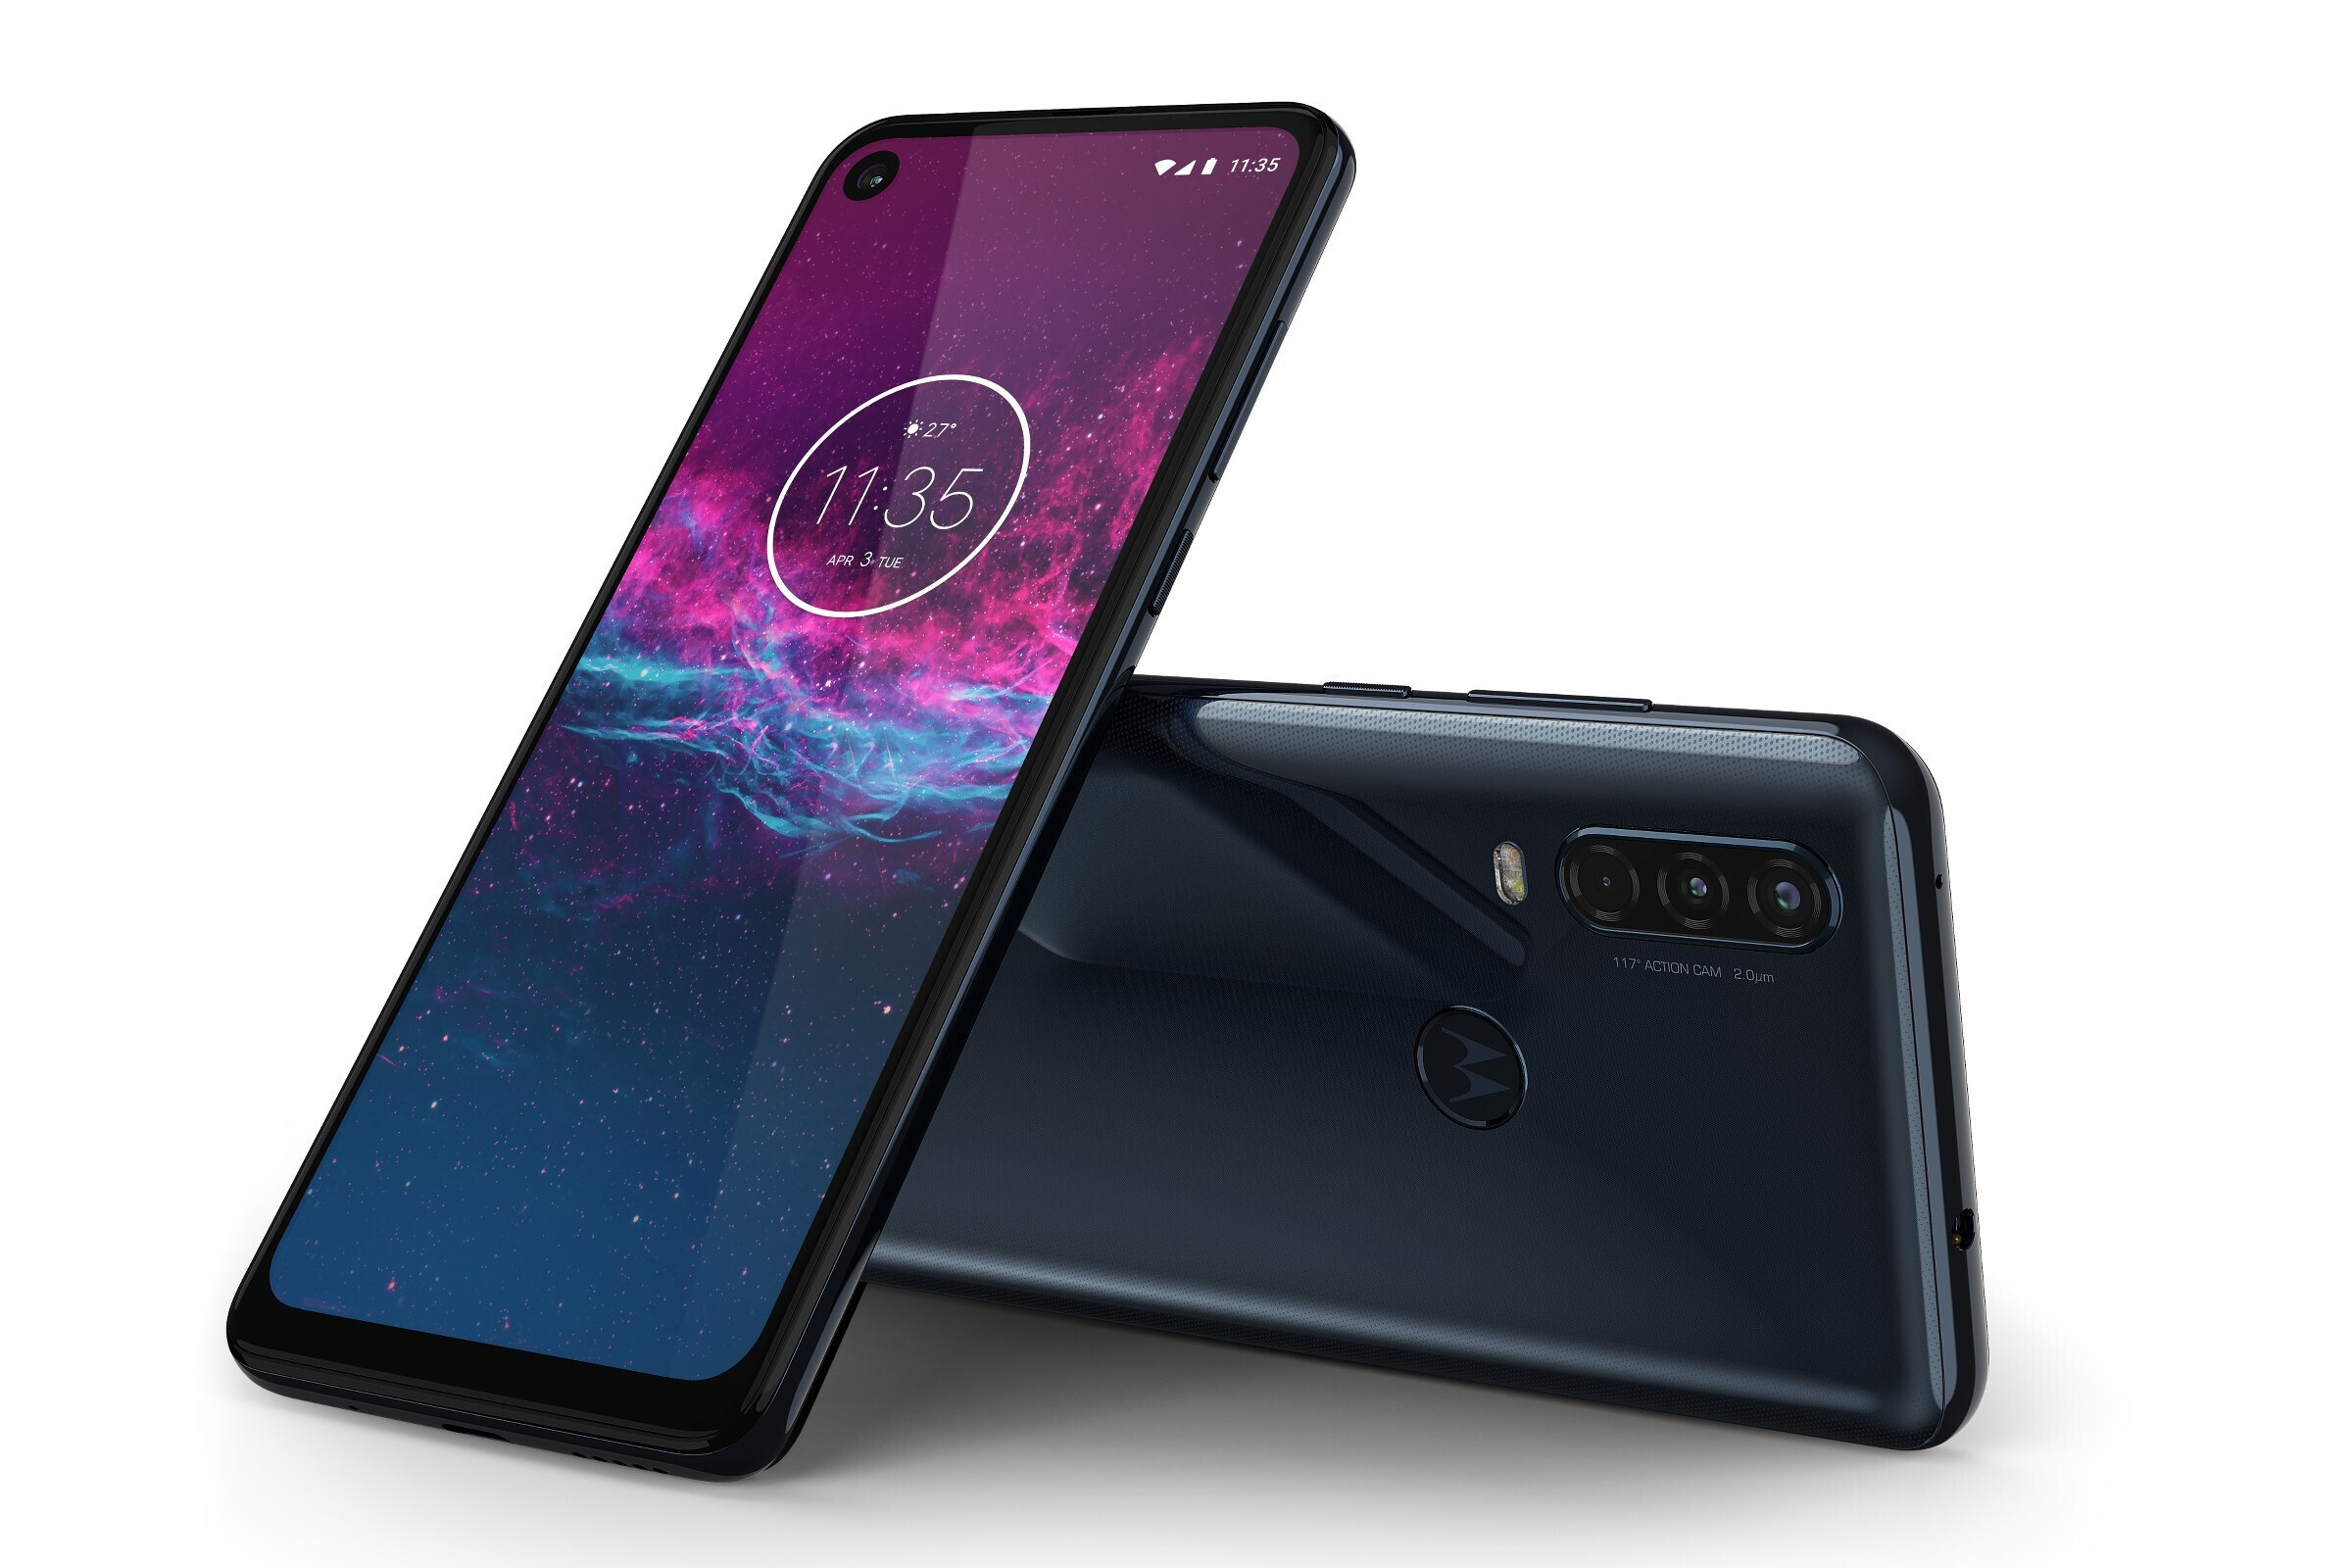 Motorola One Action Announced with 21:9 Screen & Ultra wide Camera - Details